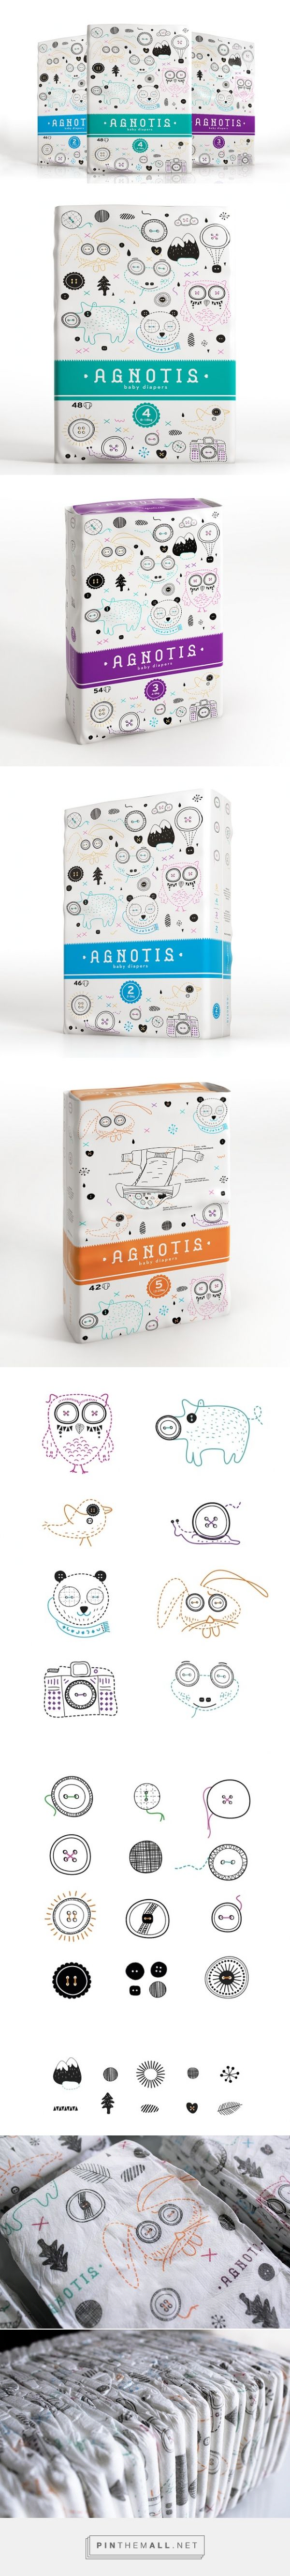 Agnotis on Packaging of the World is the cutest diaper #packaging you'll ever see curated by Packaging Diva PD created via http://www.packagingoftheworld.com/2014/10/agnotis.html?m=1